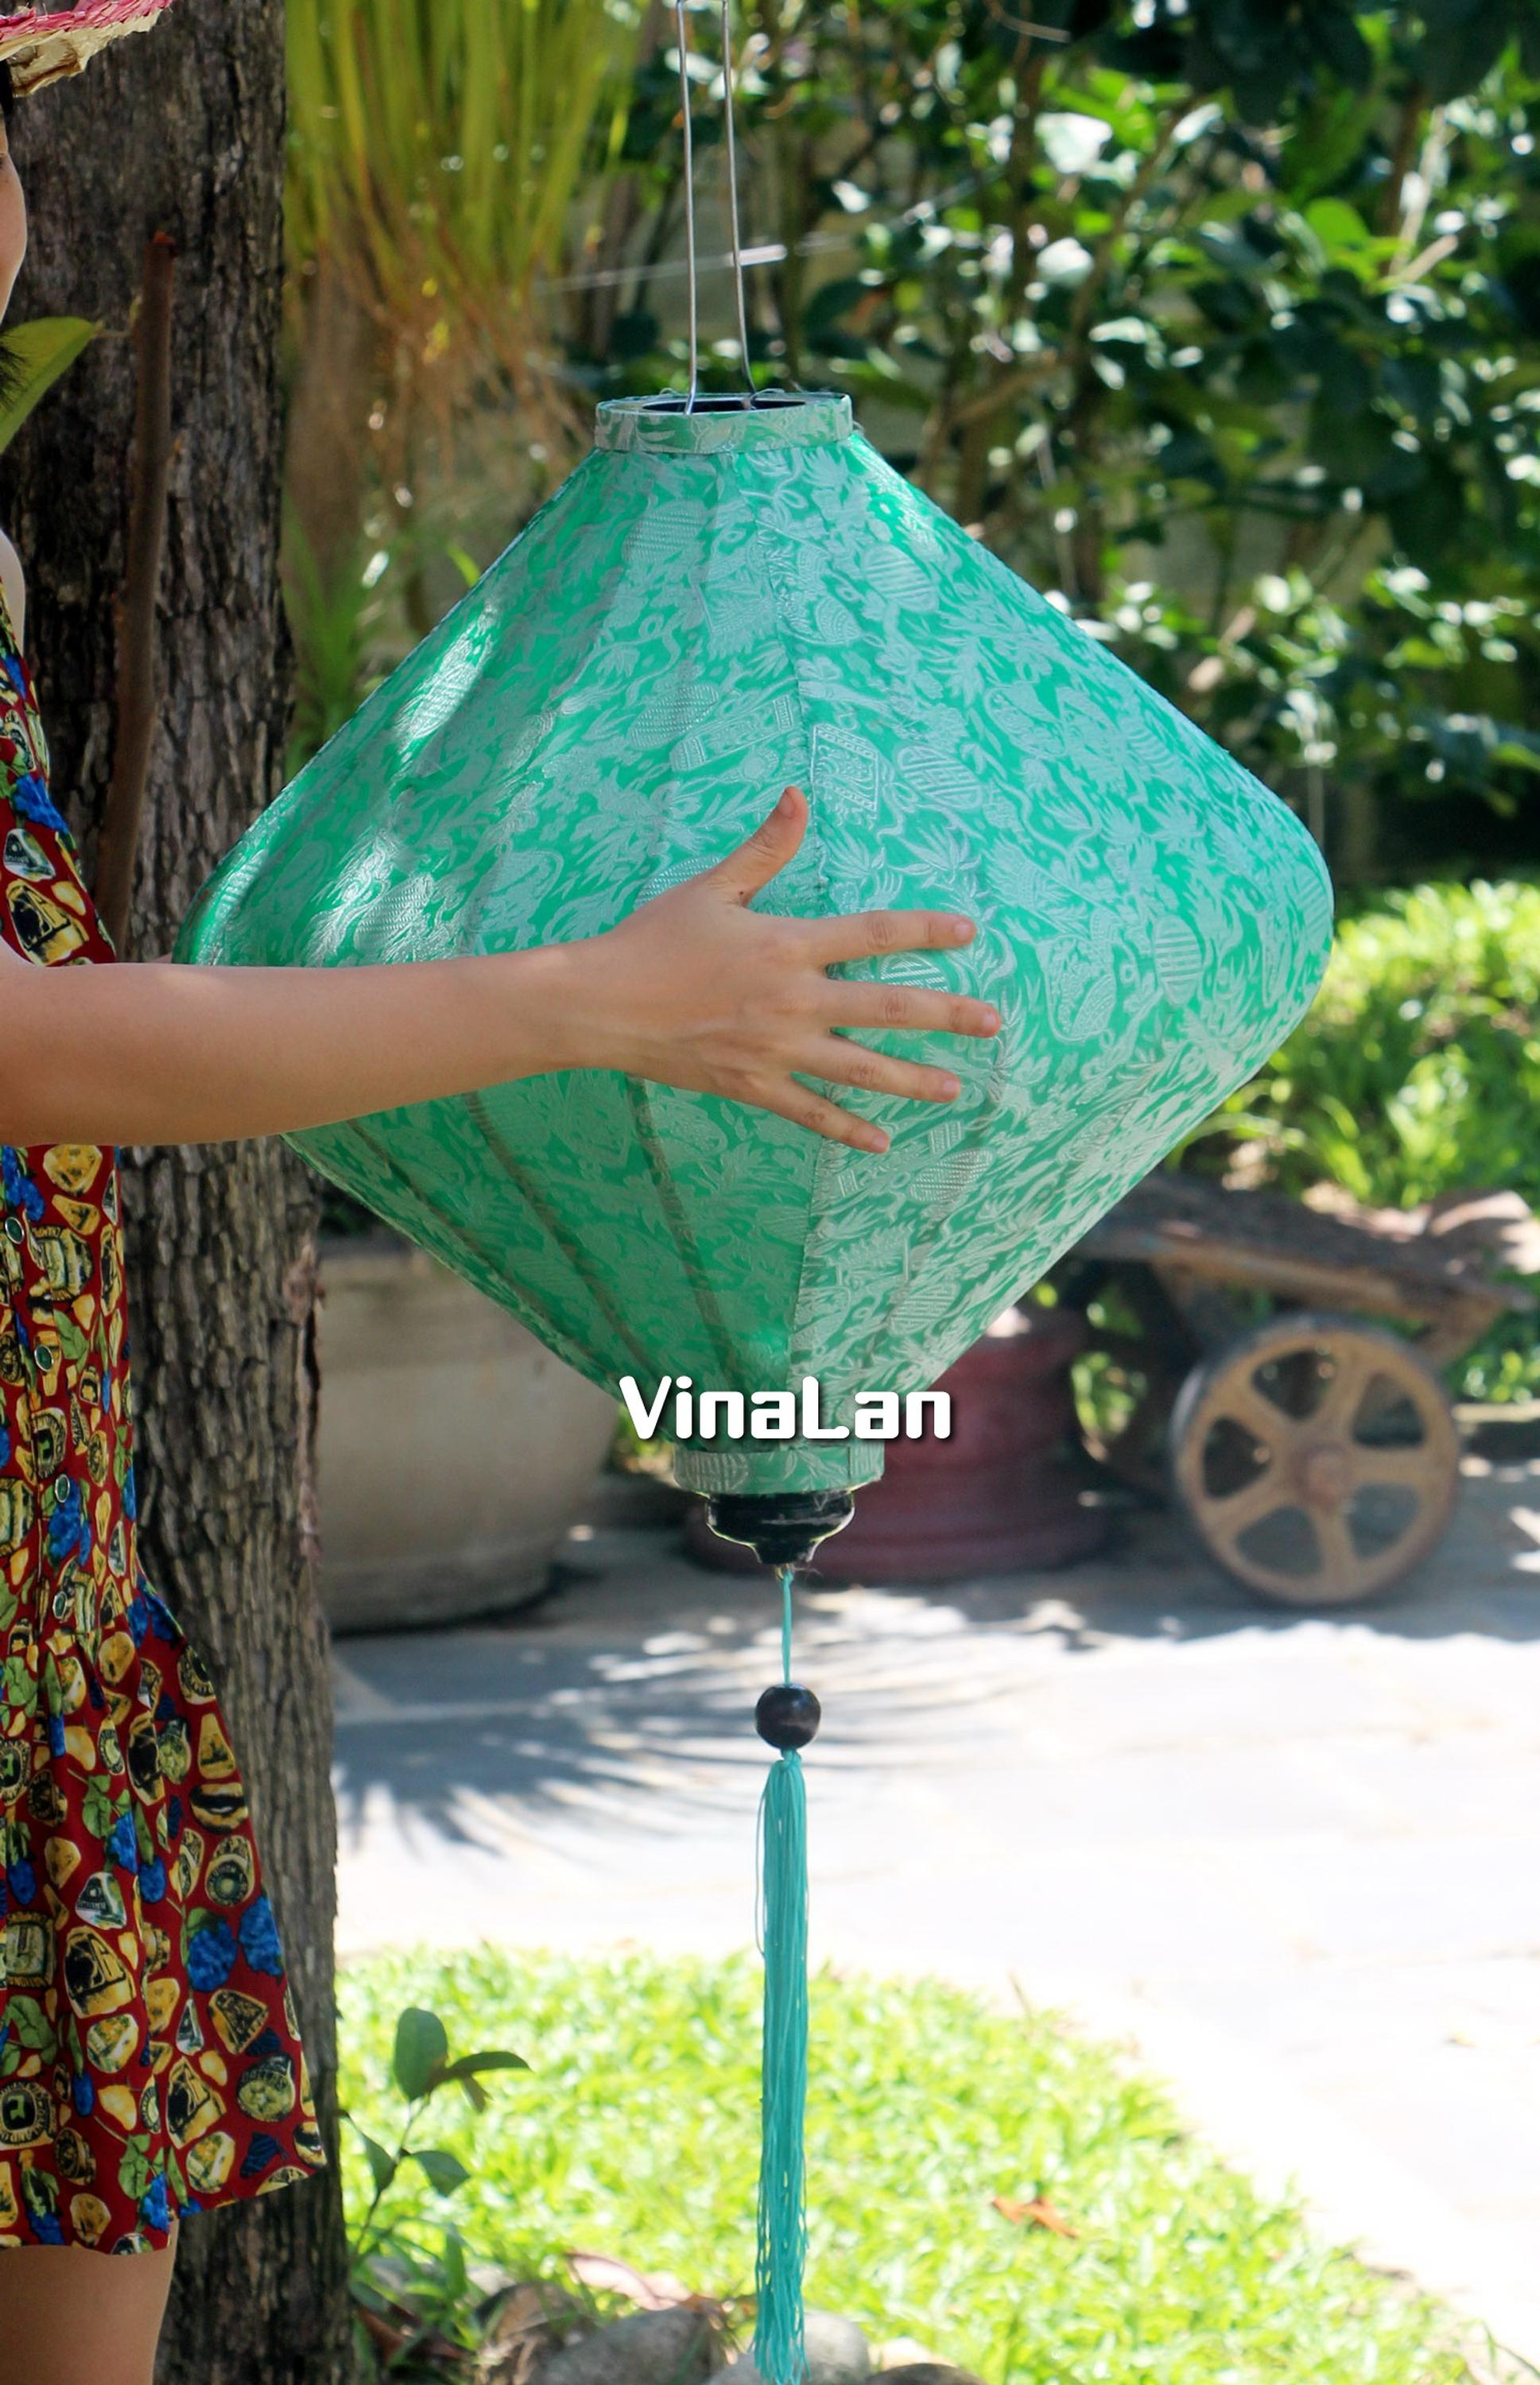 Vietnam Silk Lanterns For Wedding Decoration Outdoor Lanterns Buy Vietnam Lanterns Silk Lanterns Hoi An Lanterns Product On Alibaba Com